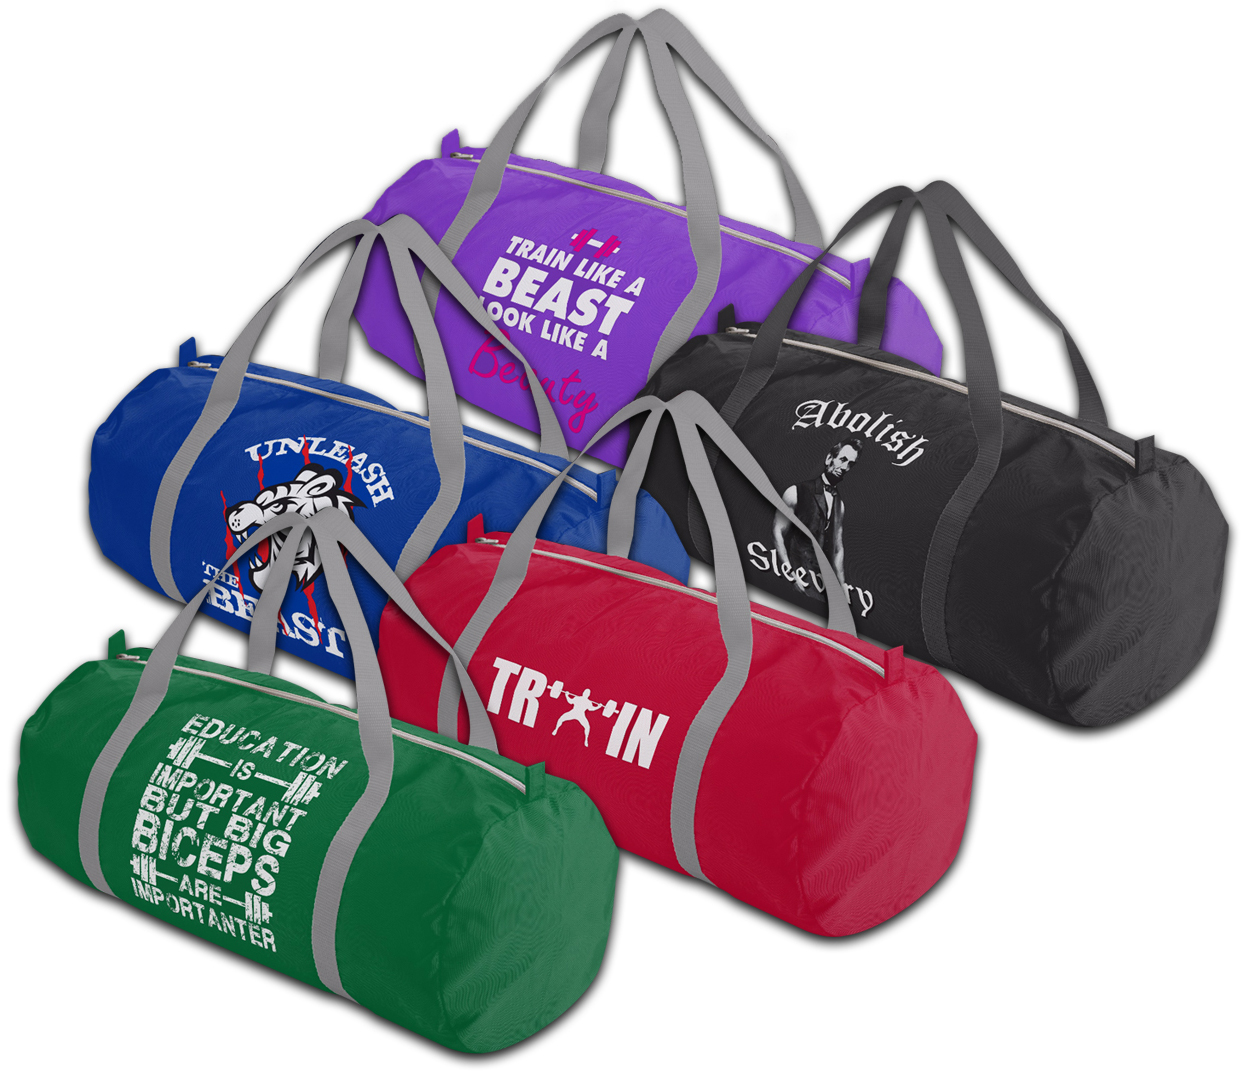 duffle gym bags for gym, bodybuilding, powerlifting, weightlifting, strongman, crossfit, wod, lifting, etc